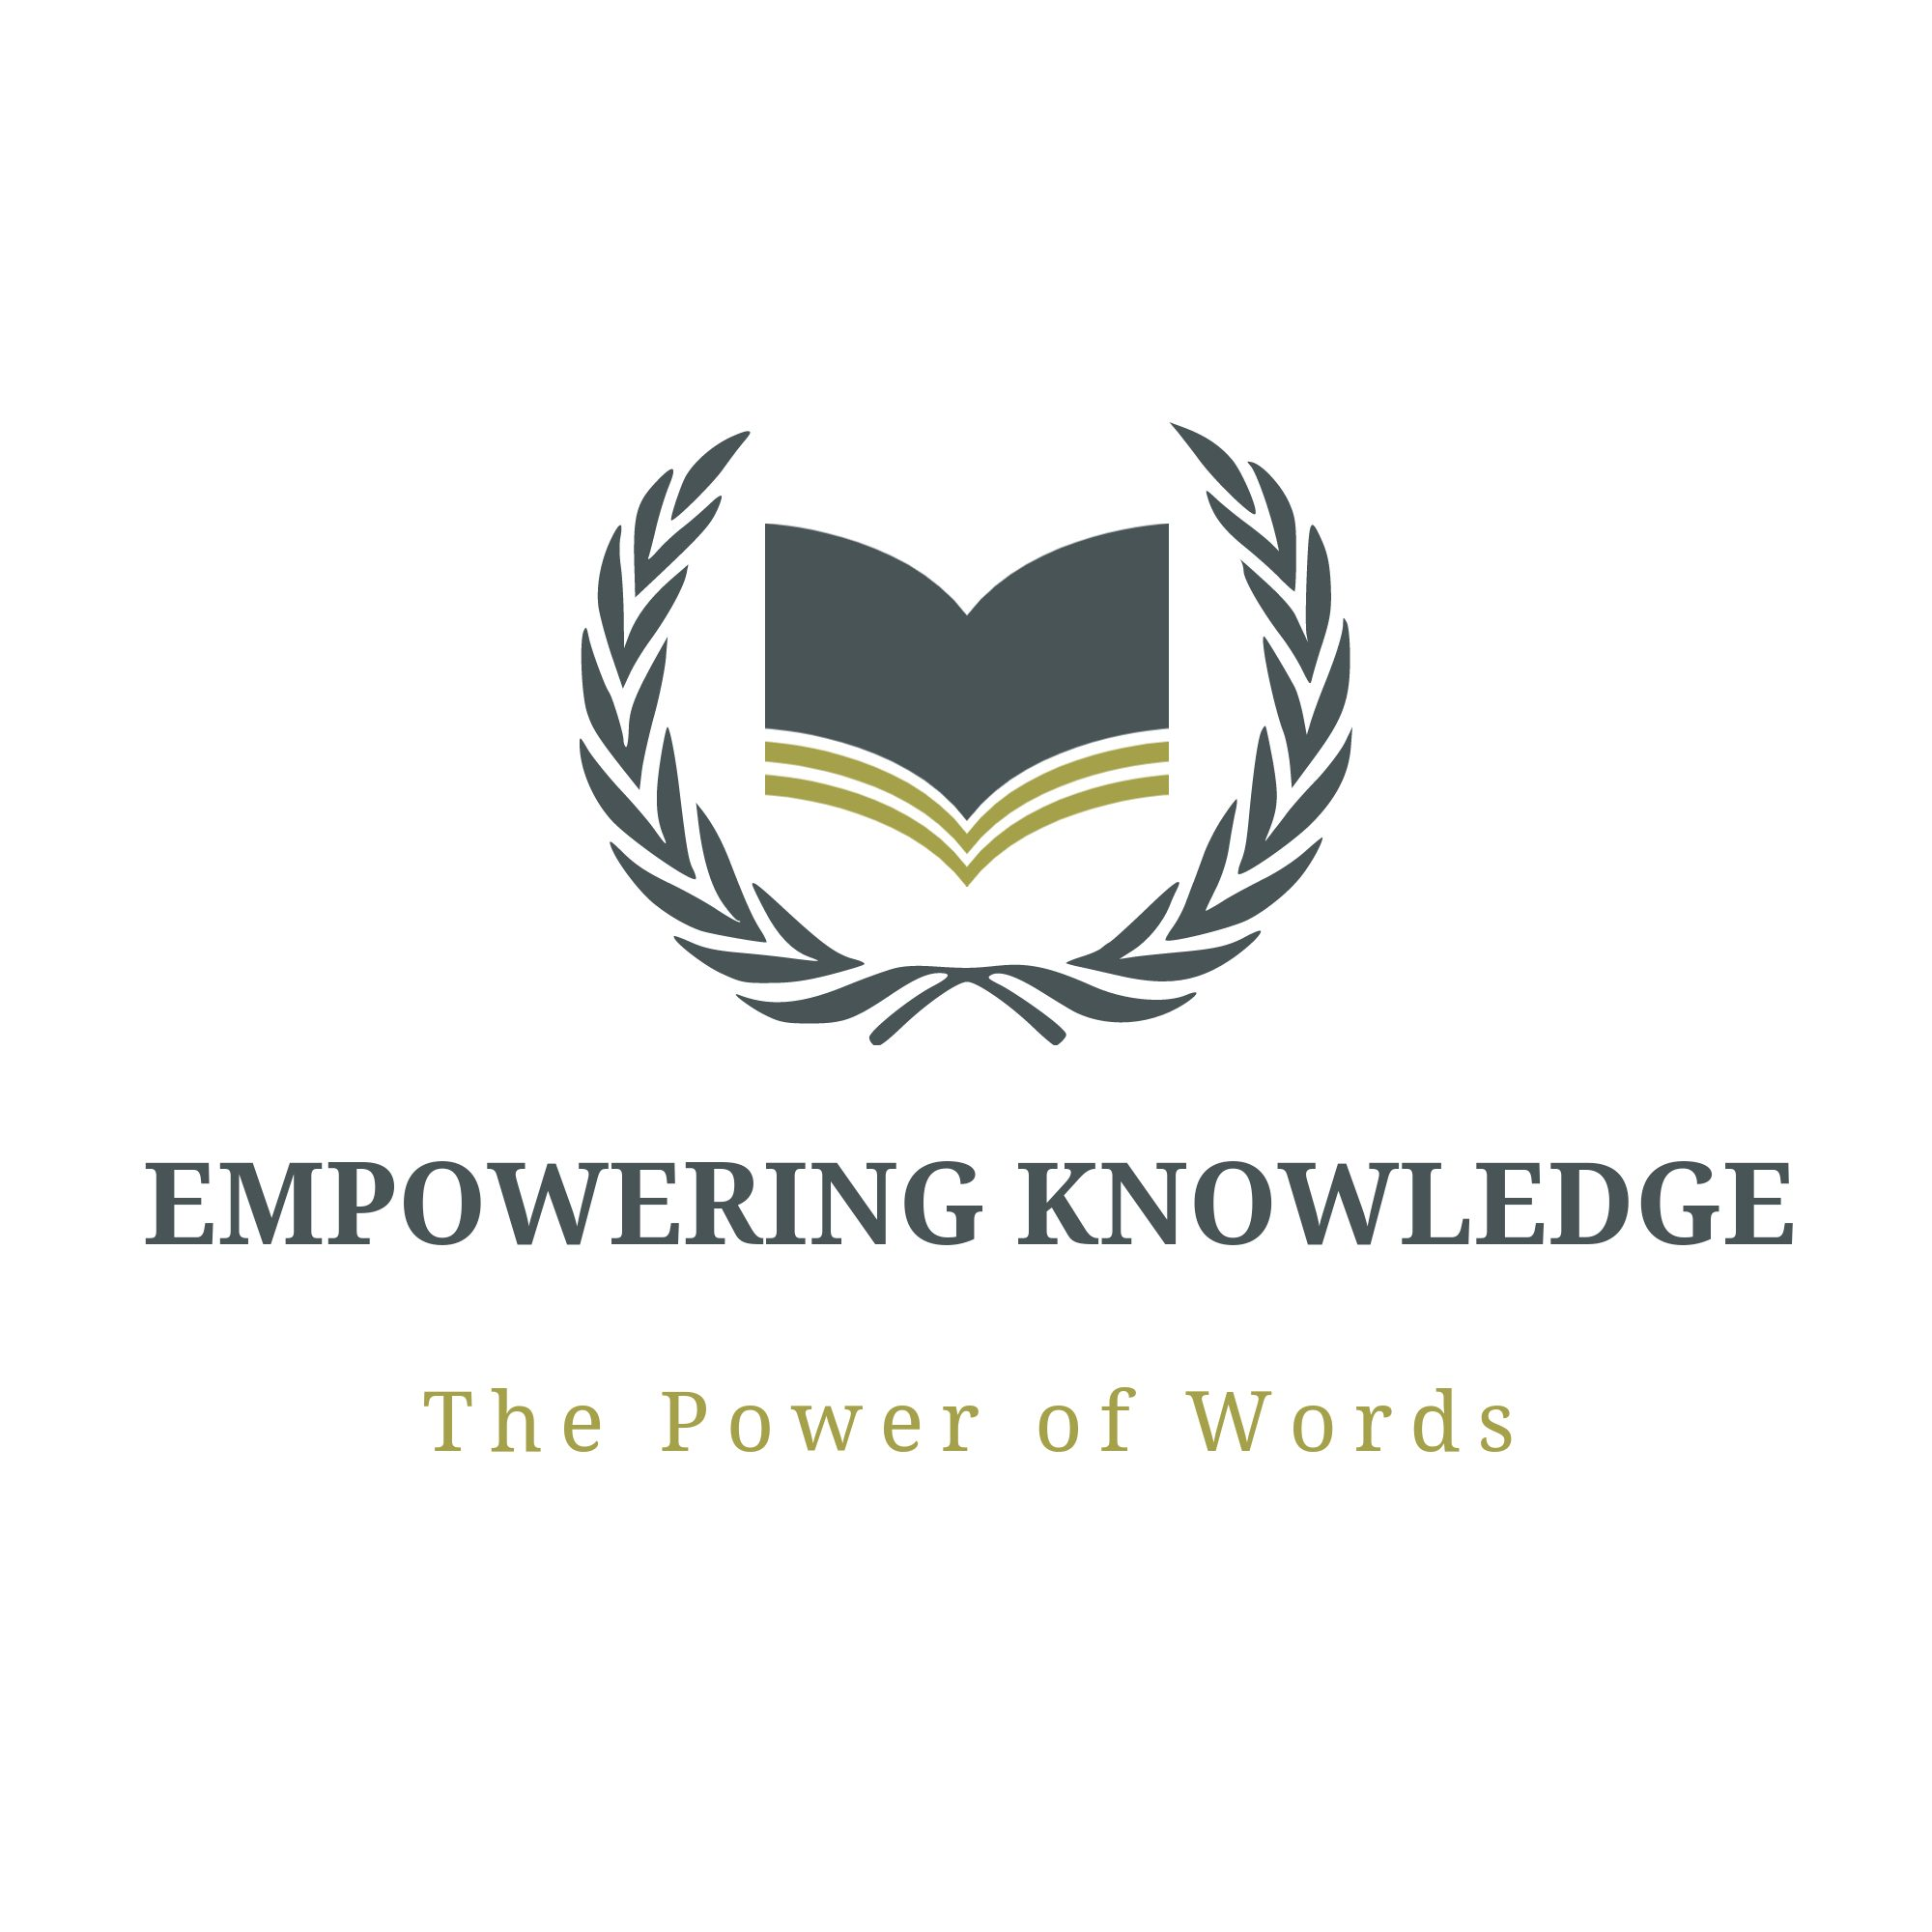 Empowering Knowledge